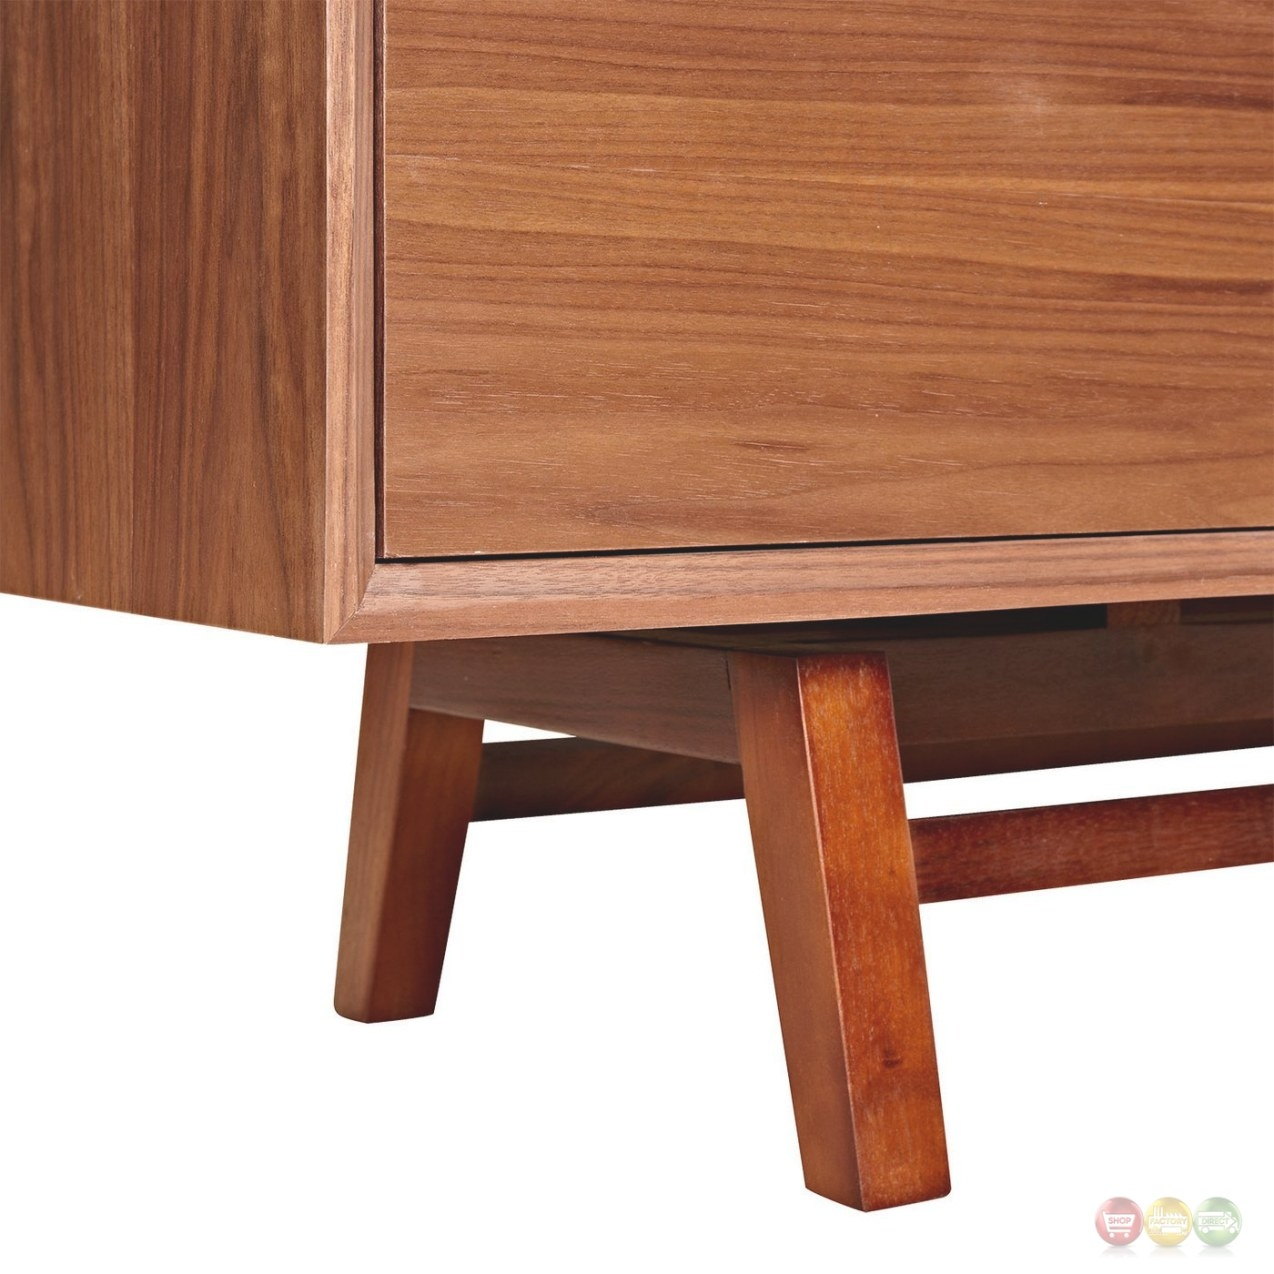 Grane Mid-Century Modern Tv Stand W/ Multi-Colored Panels throughout Mid Century Modern Tv Stand